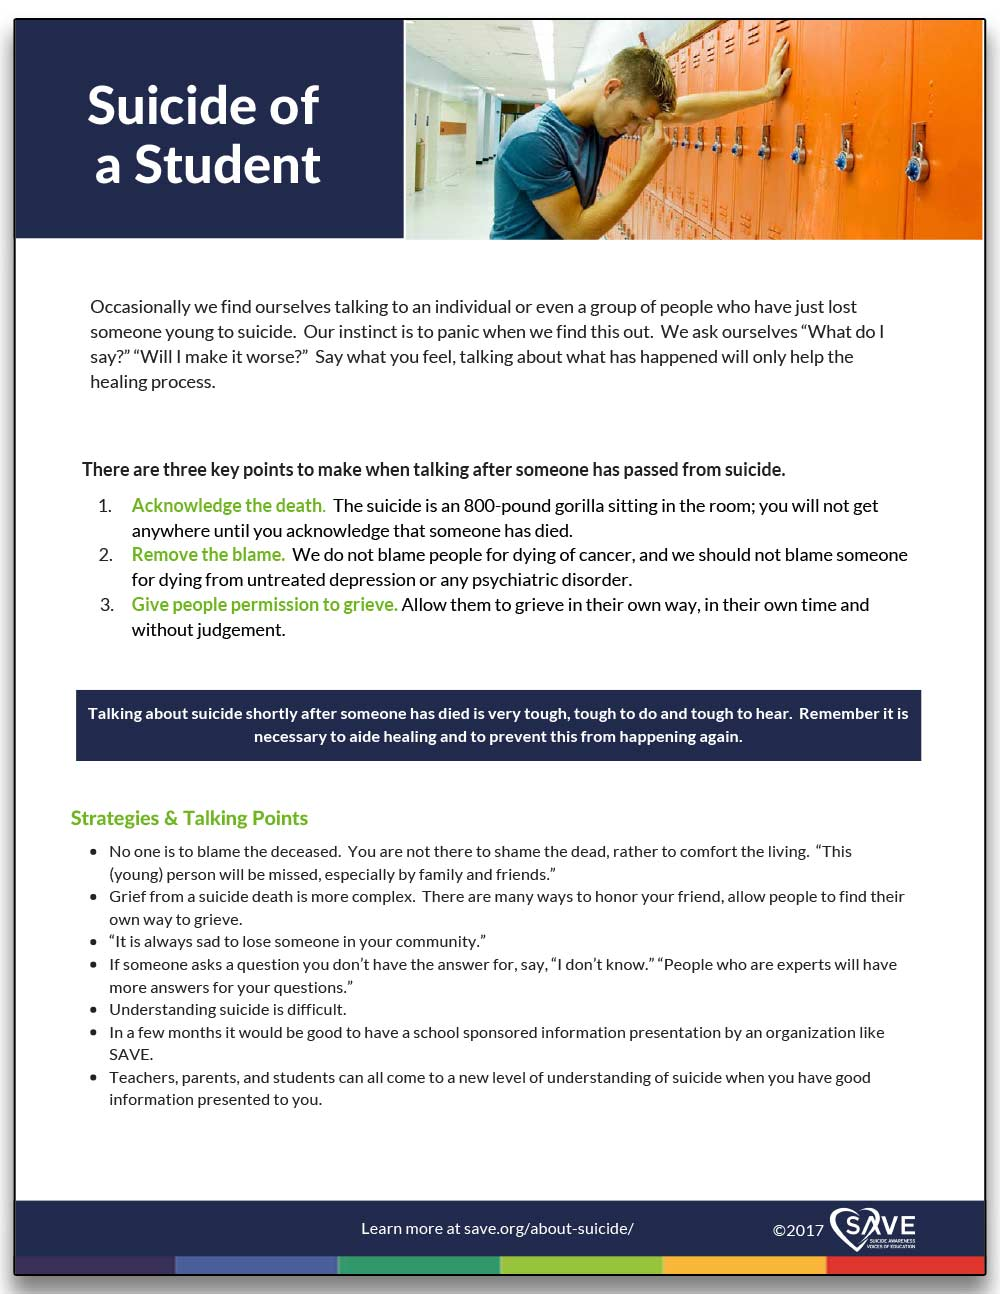 information sheet about discussing suicide of a student